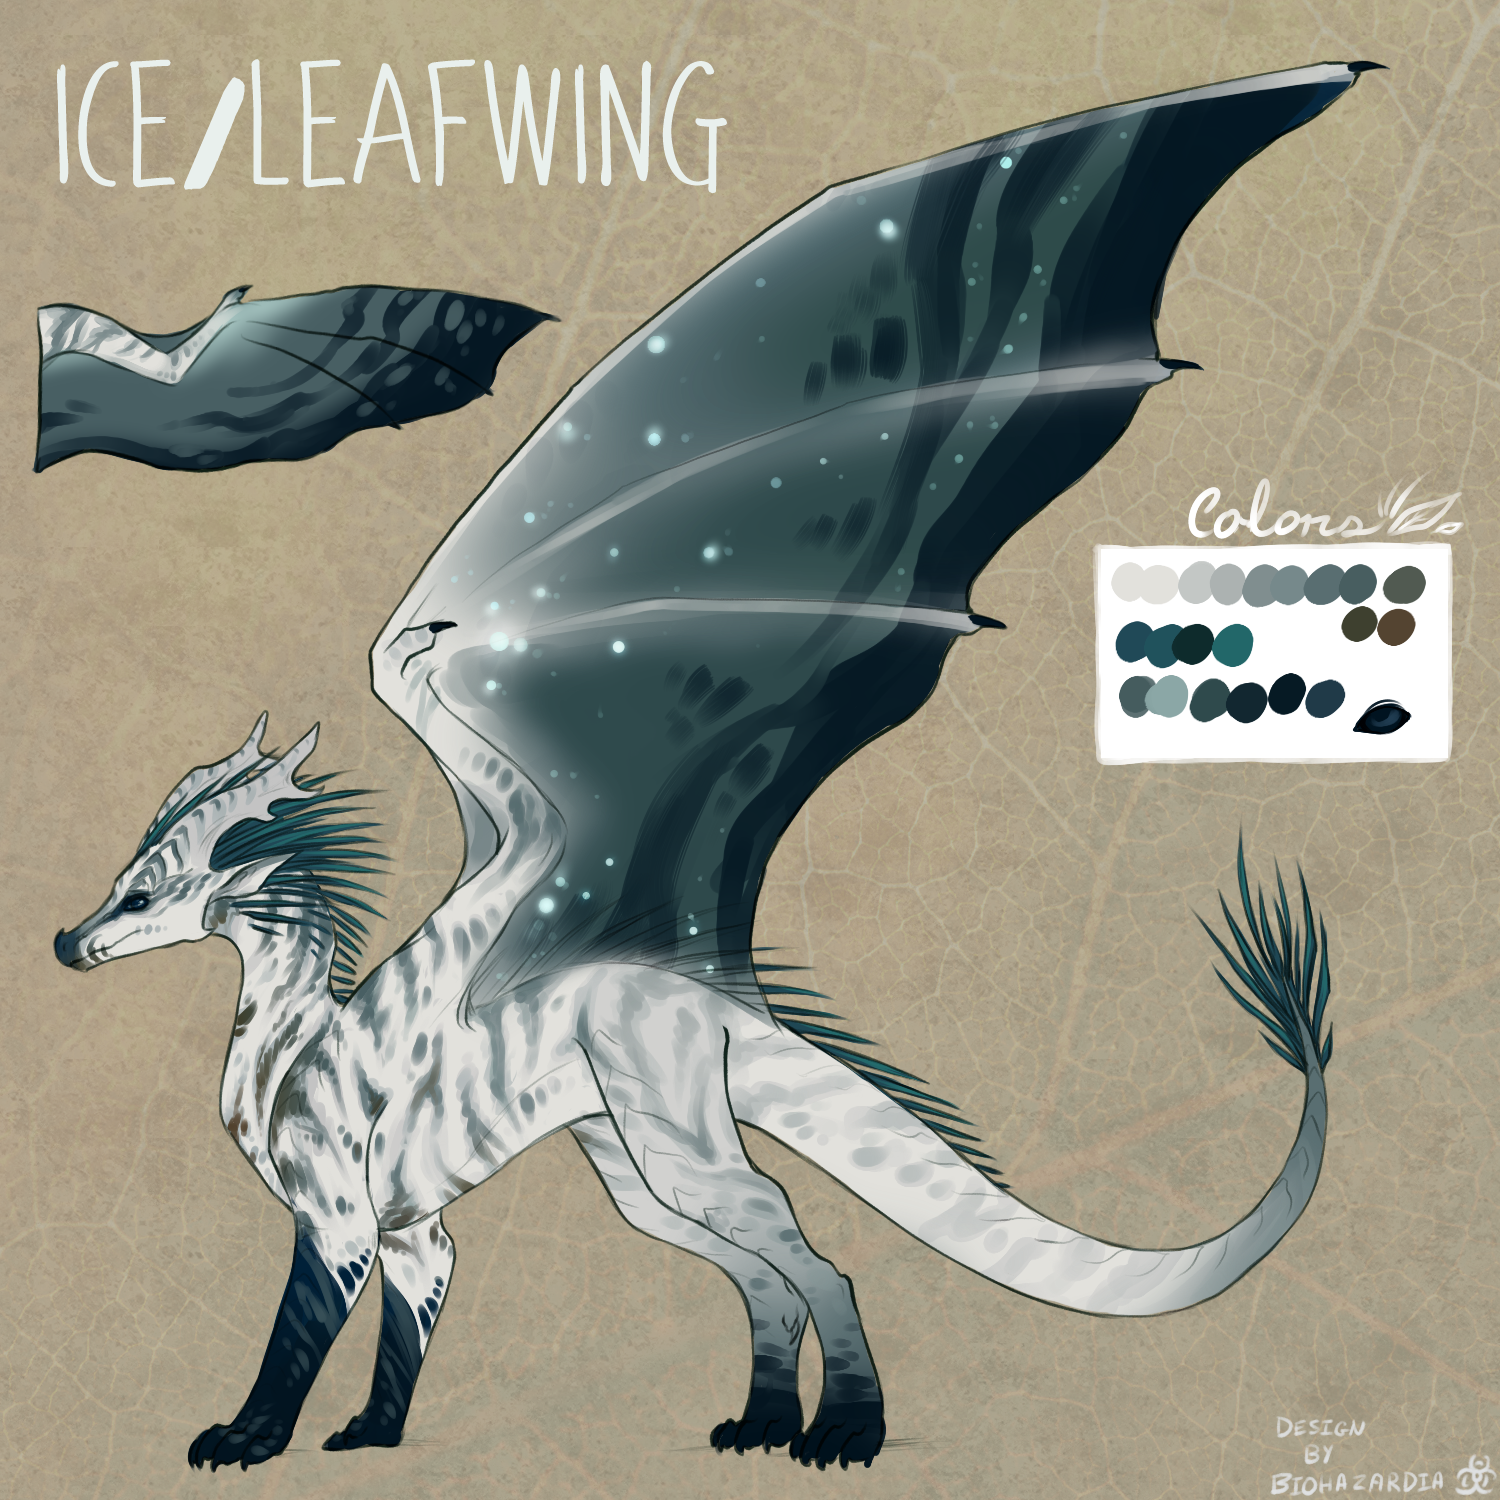 [Design Christmas Gift] Ice/LeafWing by Biohazardia